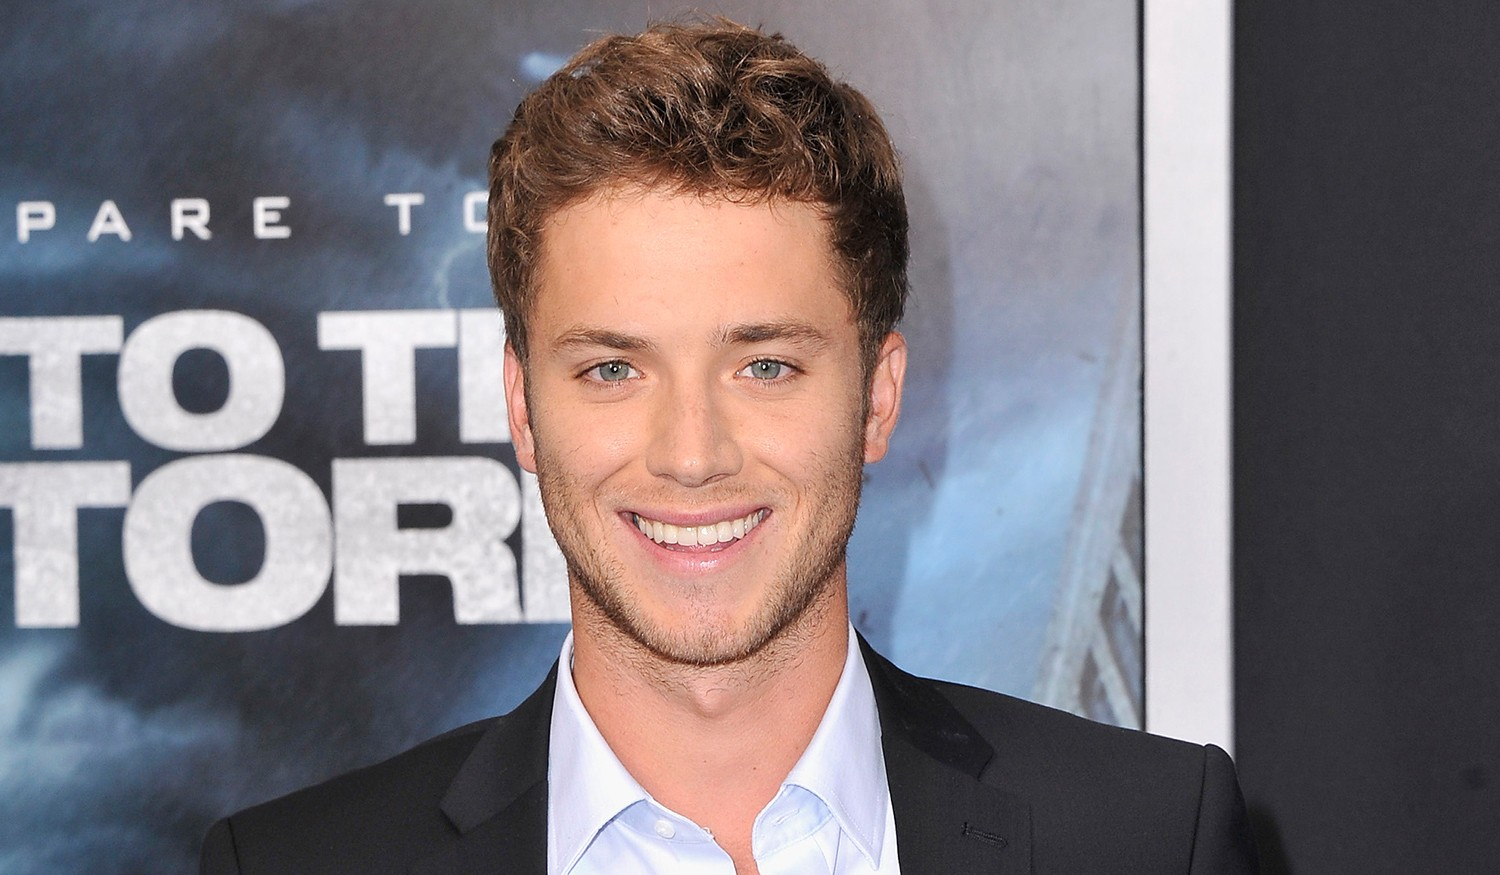 Peter Pan is Getting Married: Actor Jeremy Sumpter Engaged